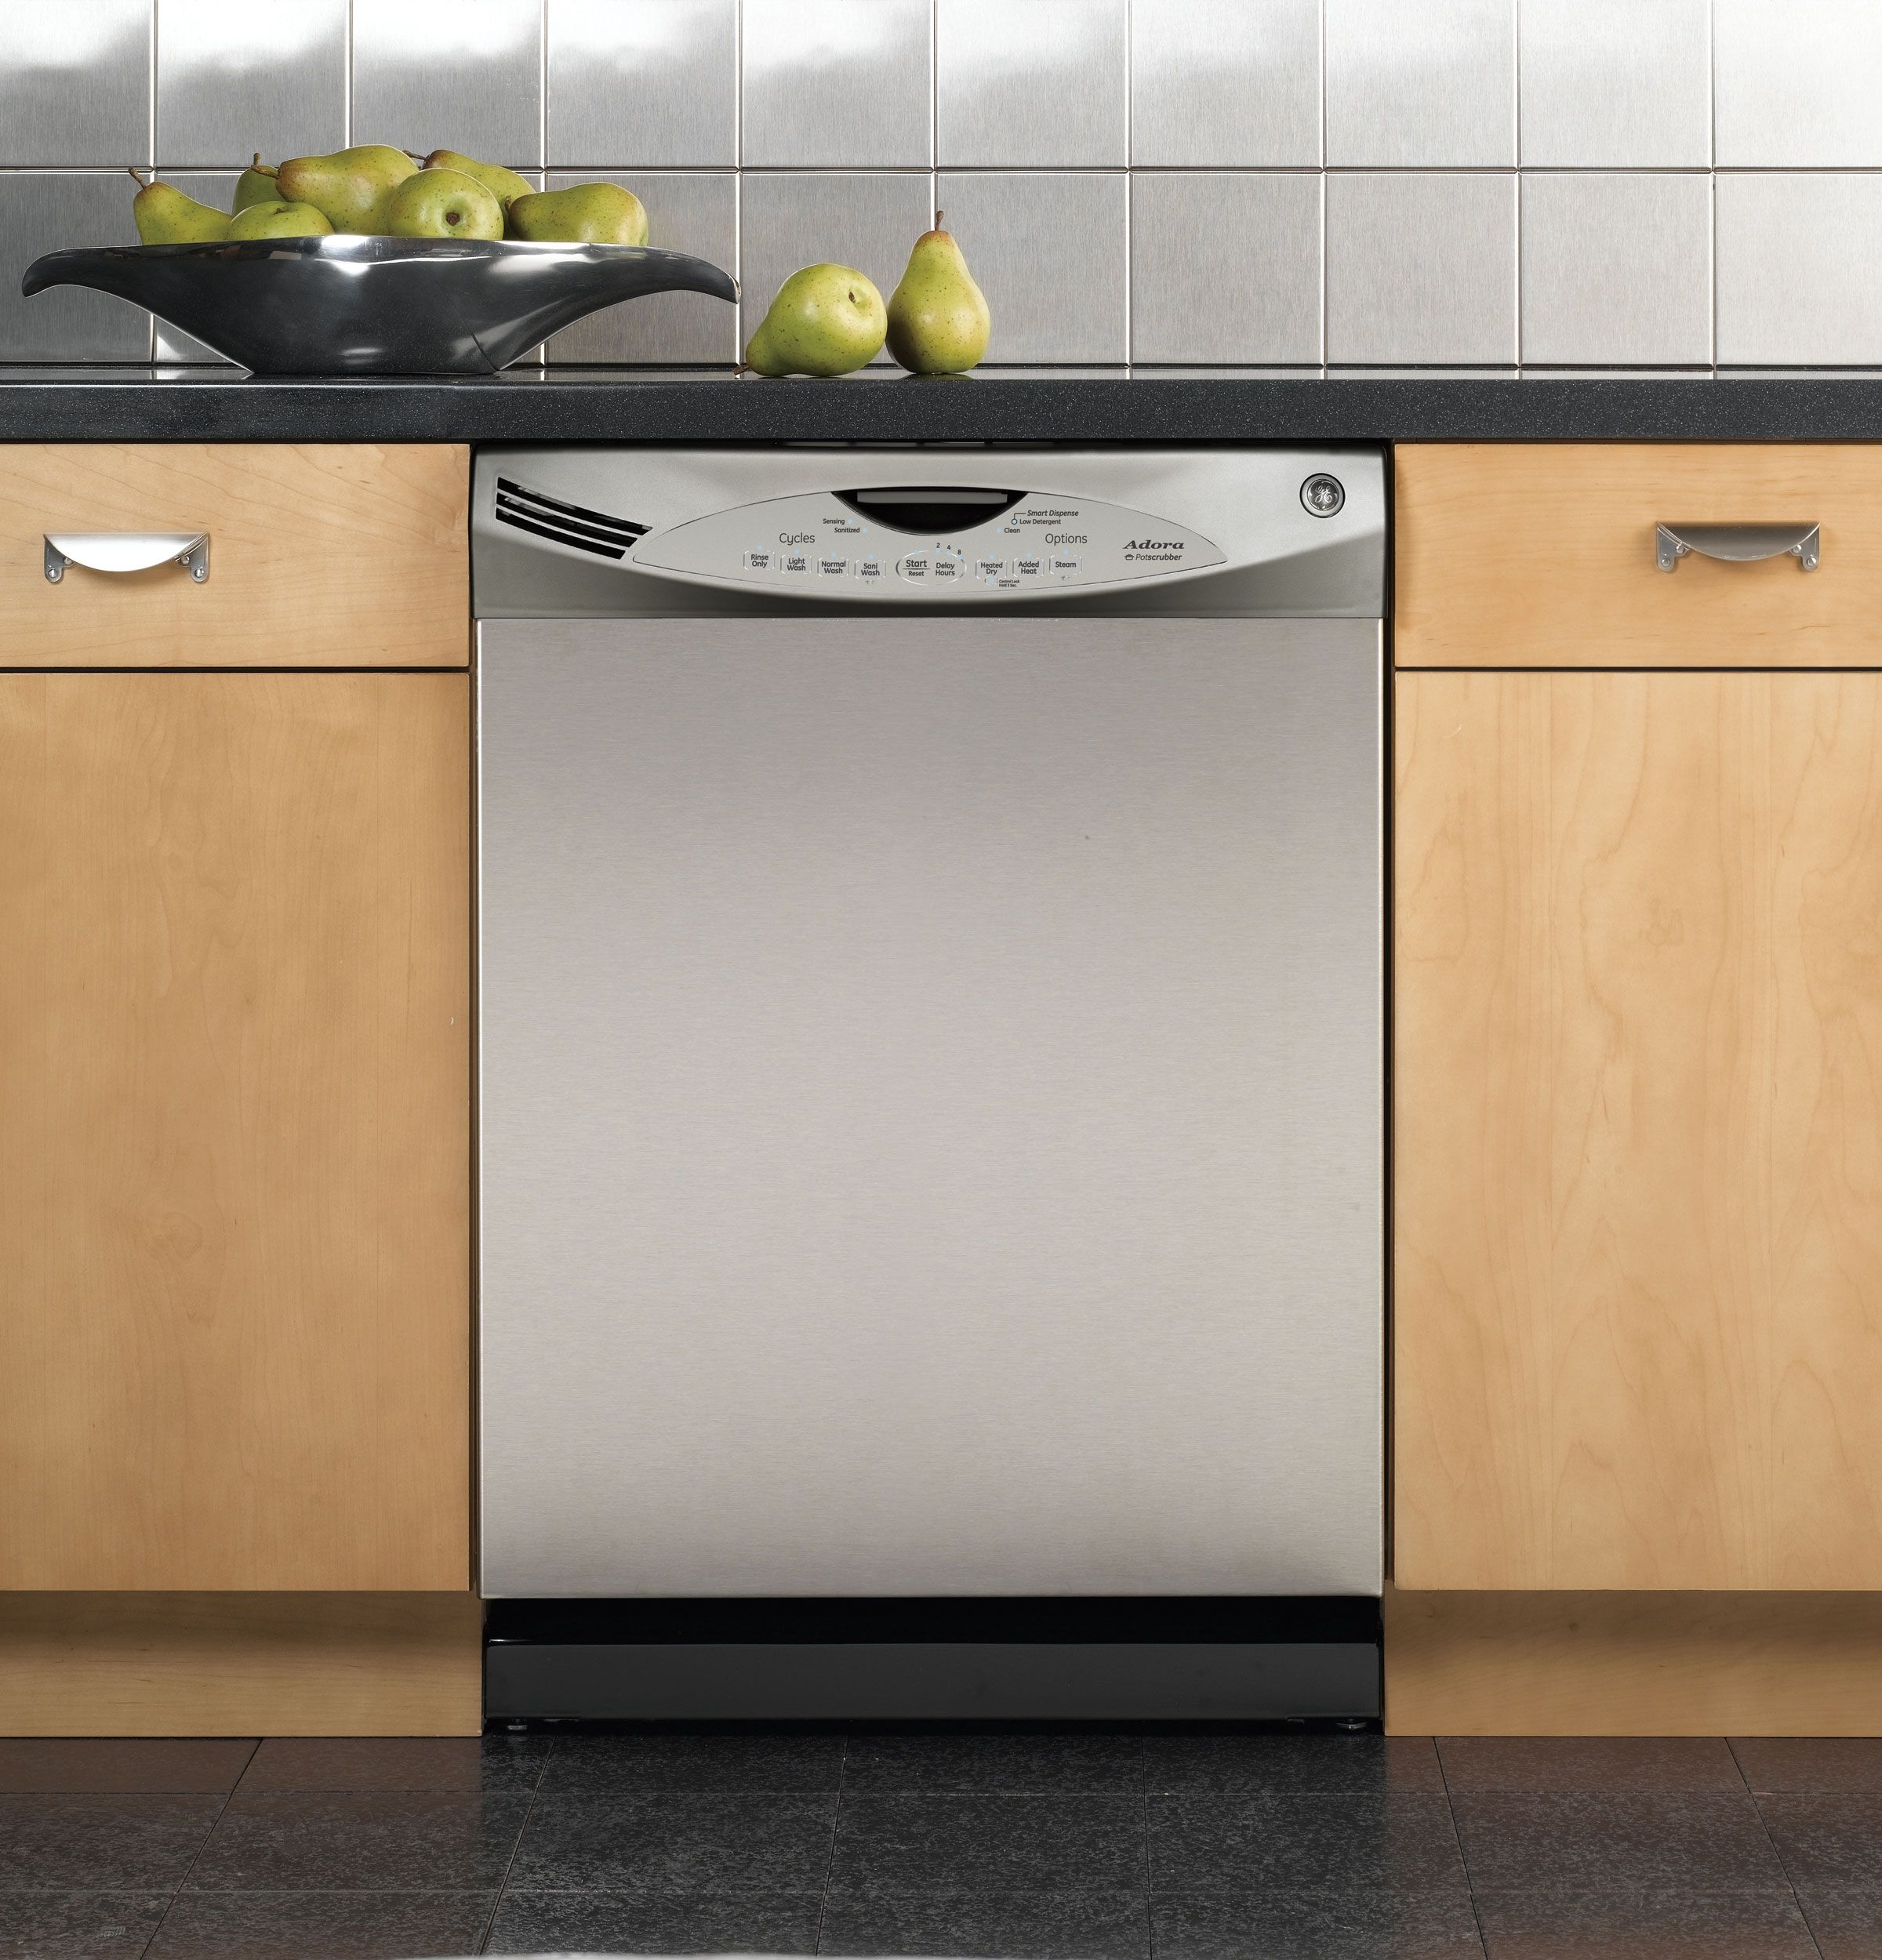 drawer image easy homework paykel fisher with style your of make dishwasher